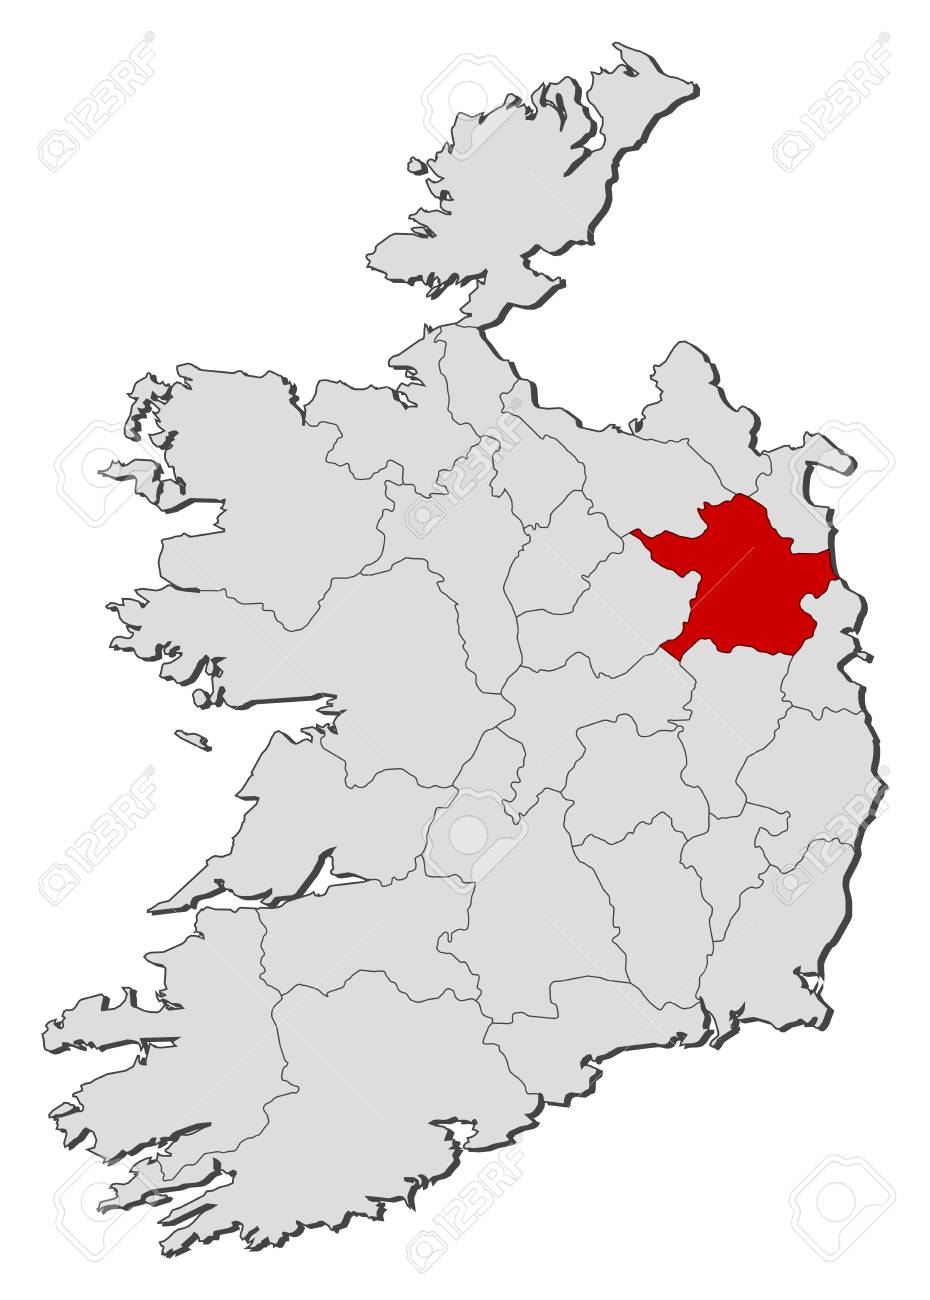 Map Of Ireland With The Provinces Meath Is Highlighted Royalty